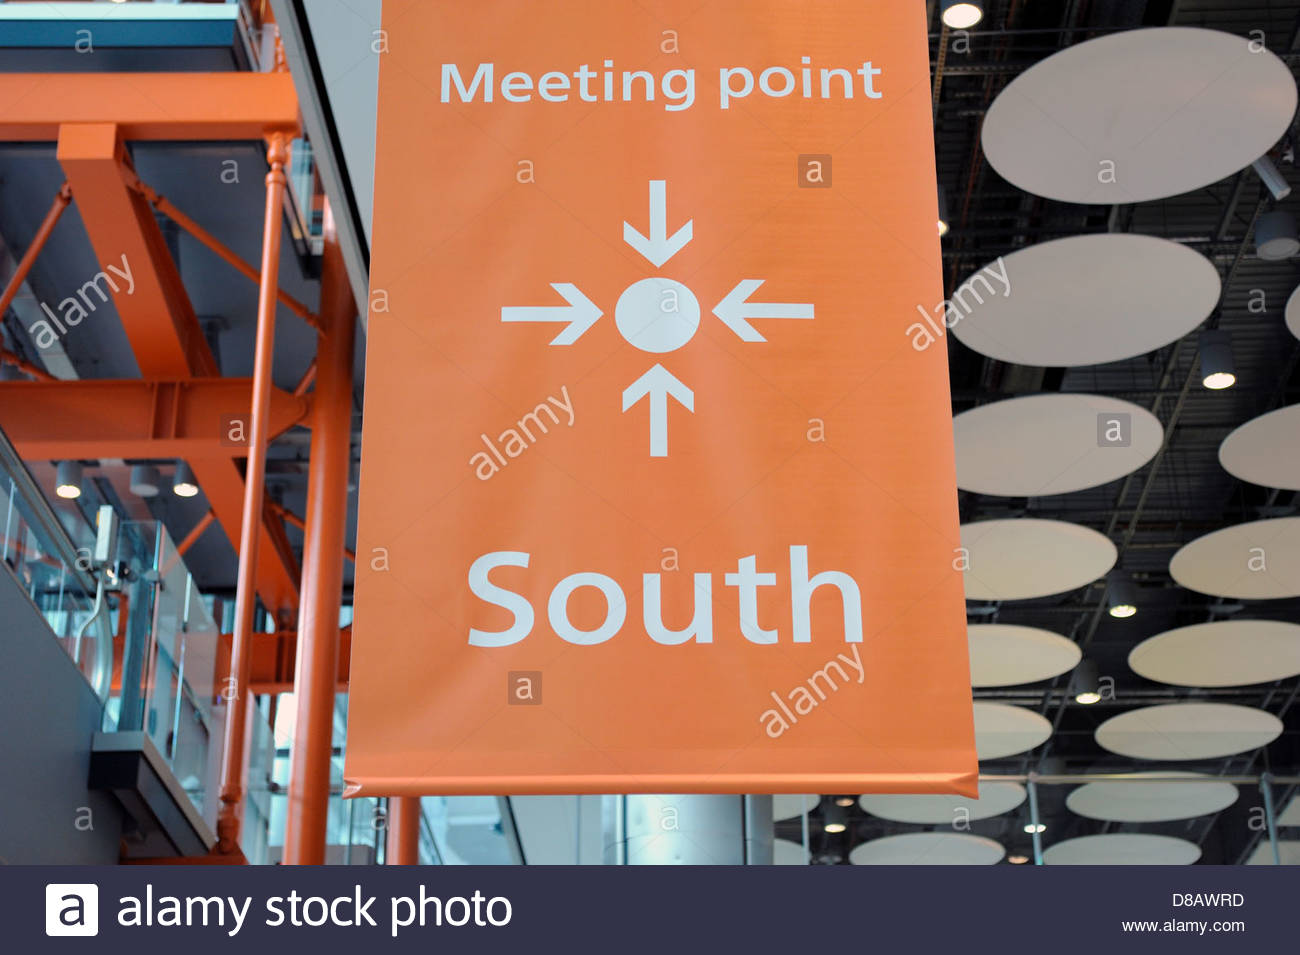 Heathrow Airport Meeting Point at Terminal 5. - Stock Image